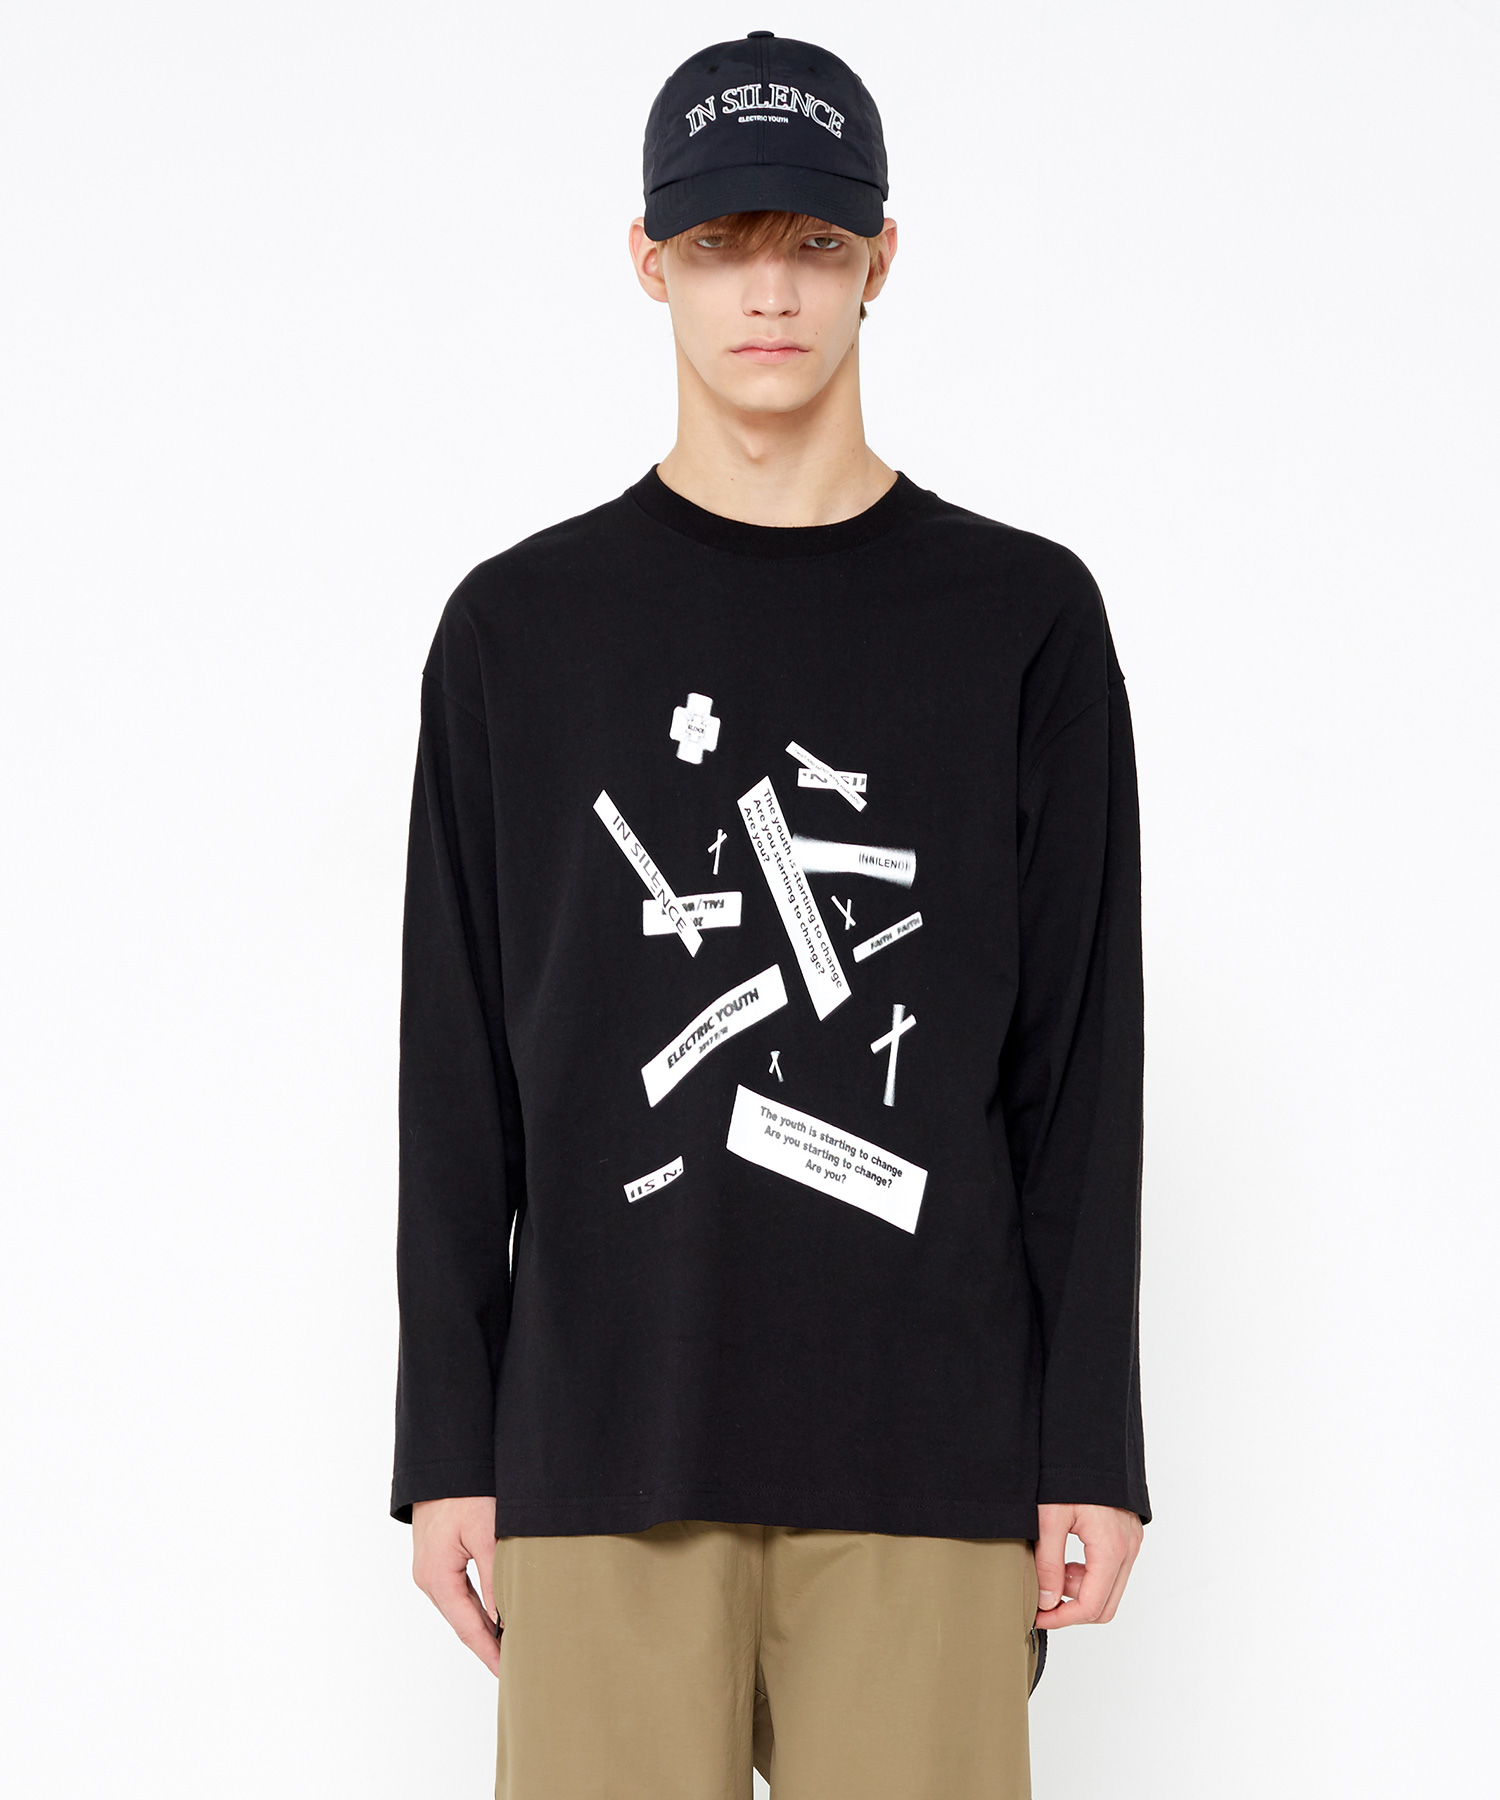 Splinters Long Sleeves